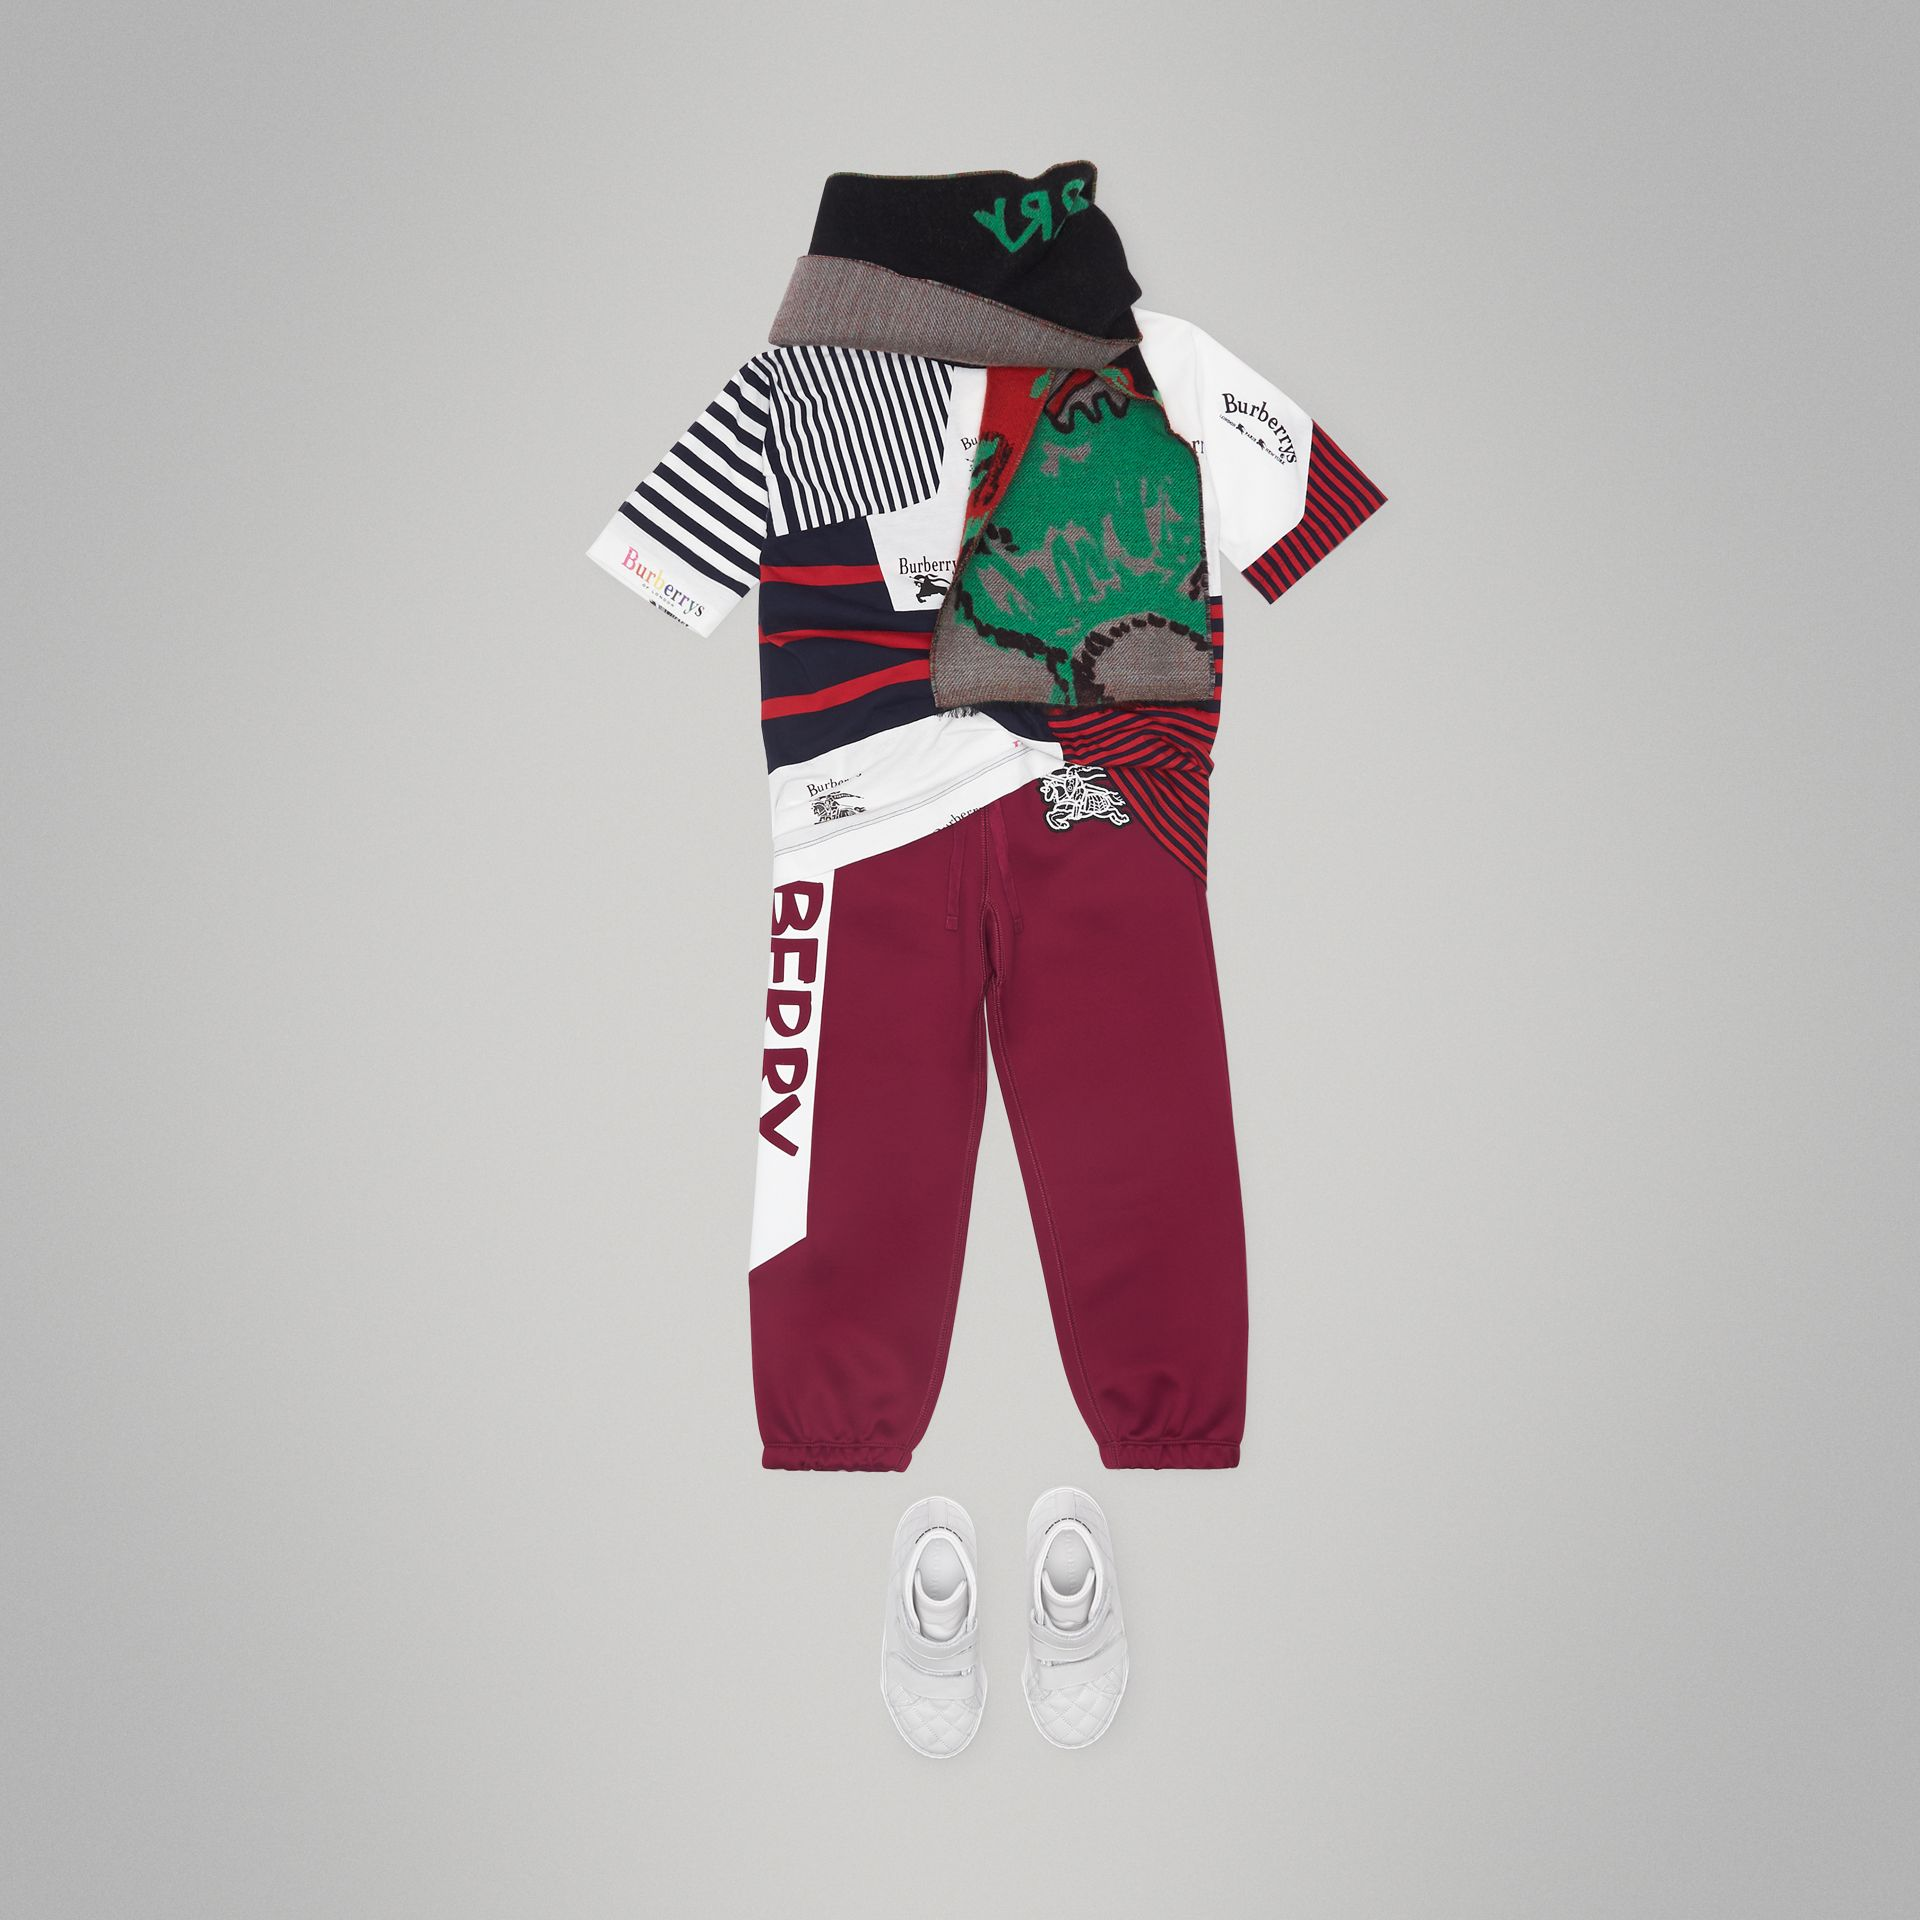 Graffiti Print Jersey Sweatpants in Burgundy - Boy | Burberry - gallery image 2